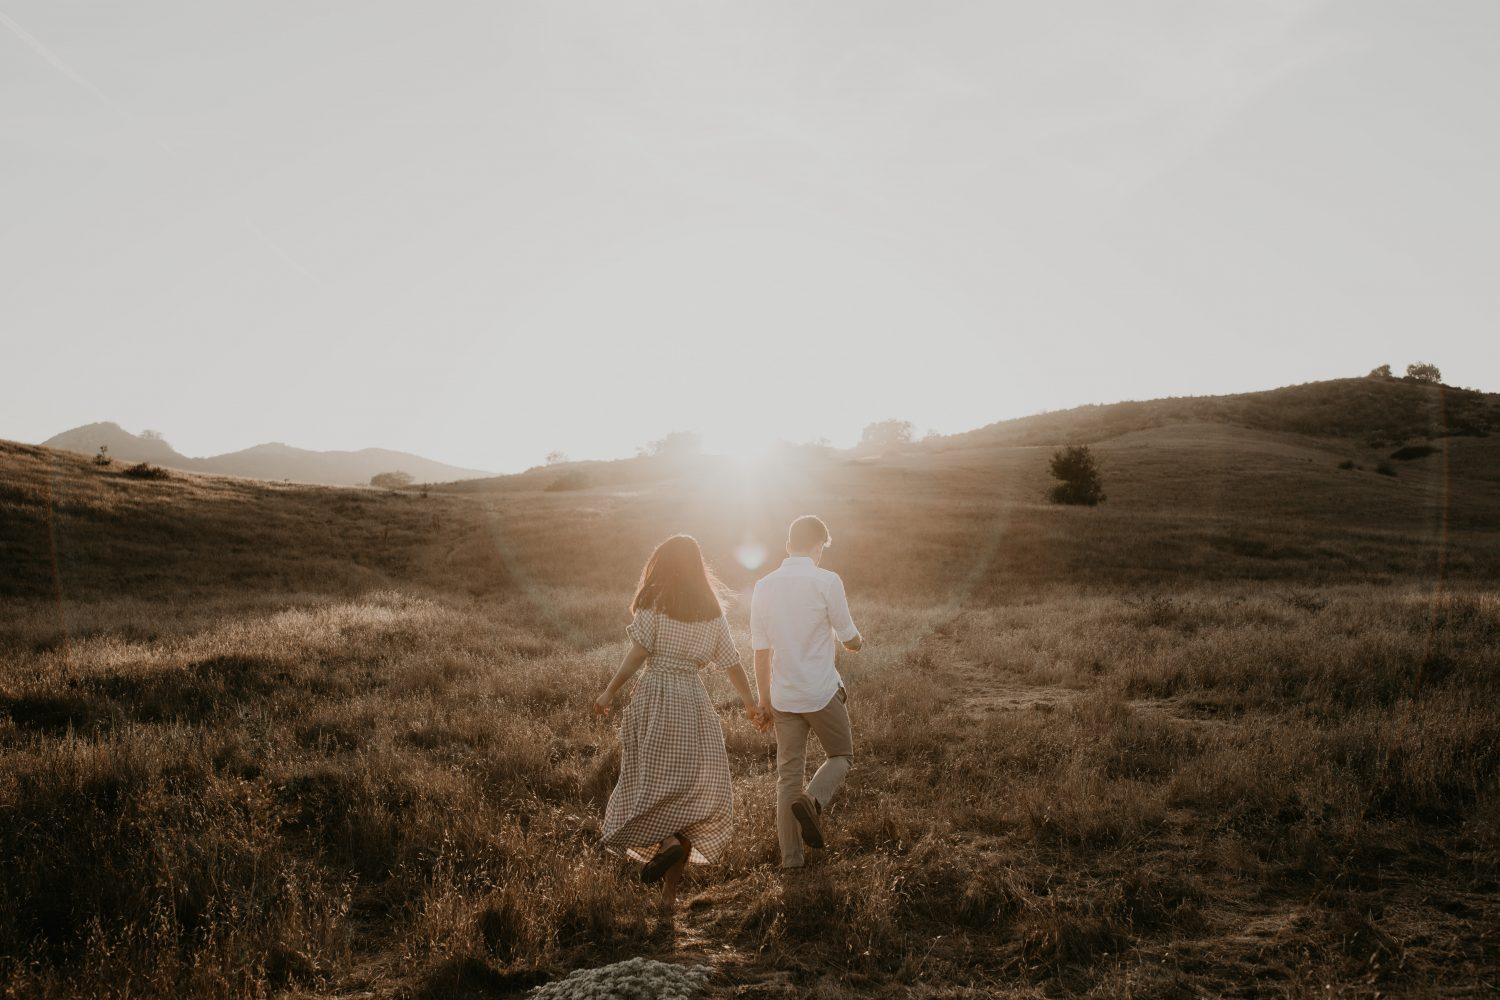 Couple walking into the sunset in a big empty field of yellow grass, image by Fatima Elreda Photo